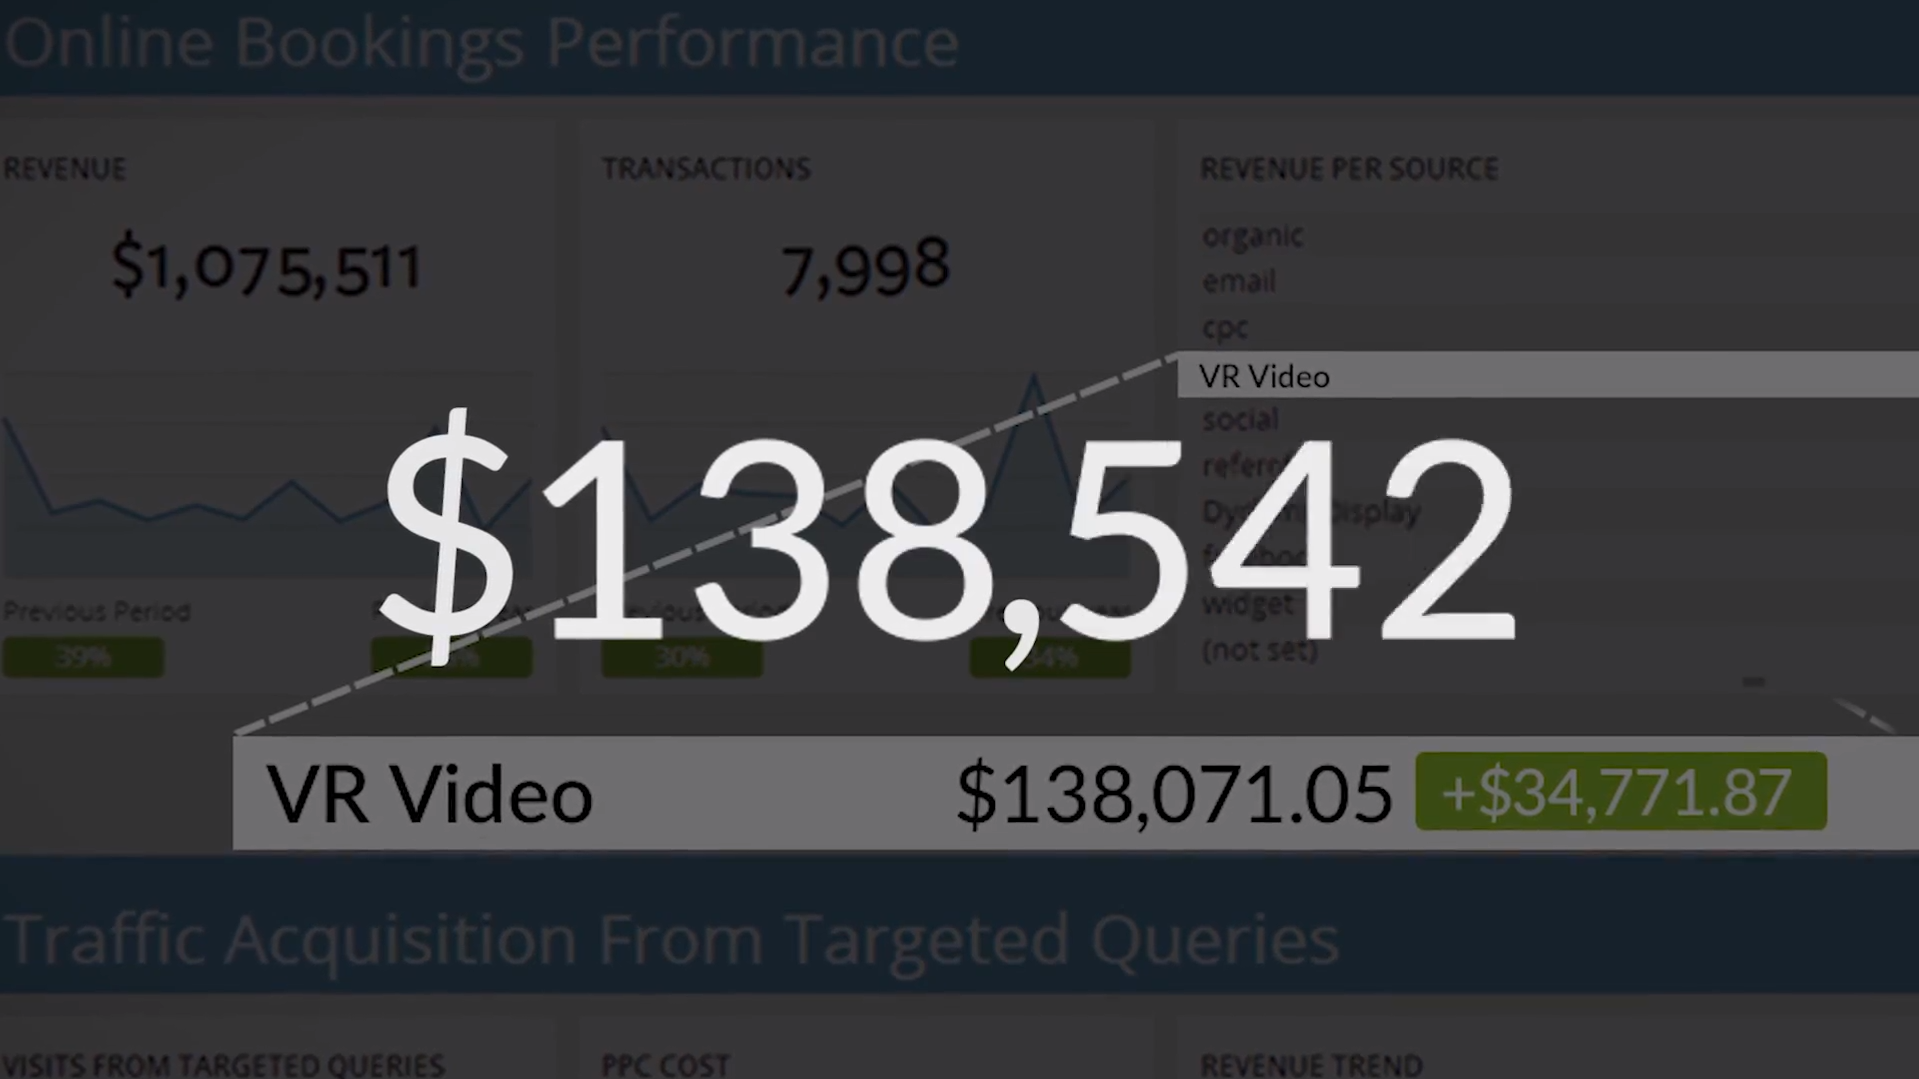 Analytics showing increase in revenue